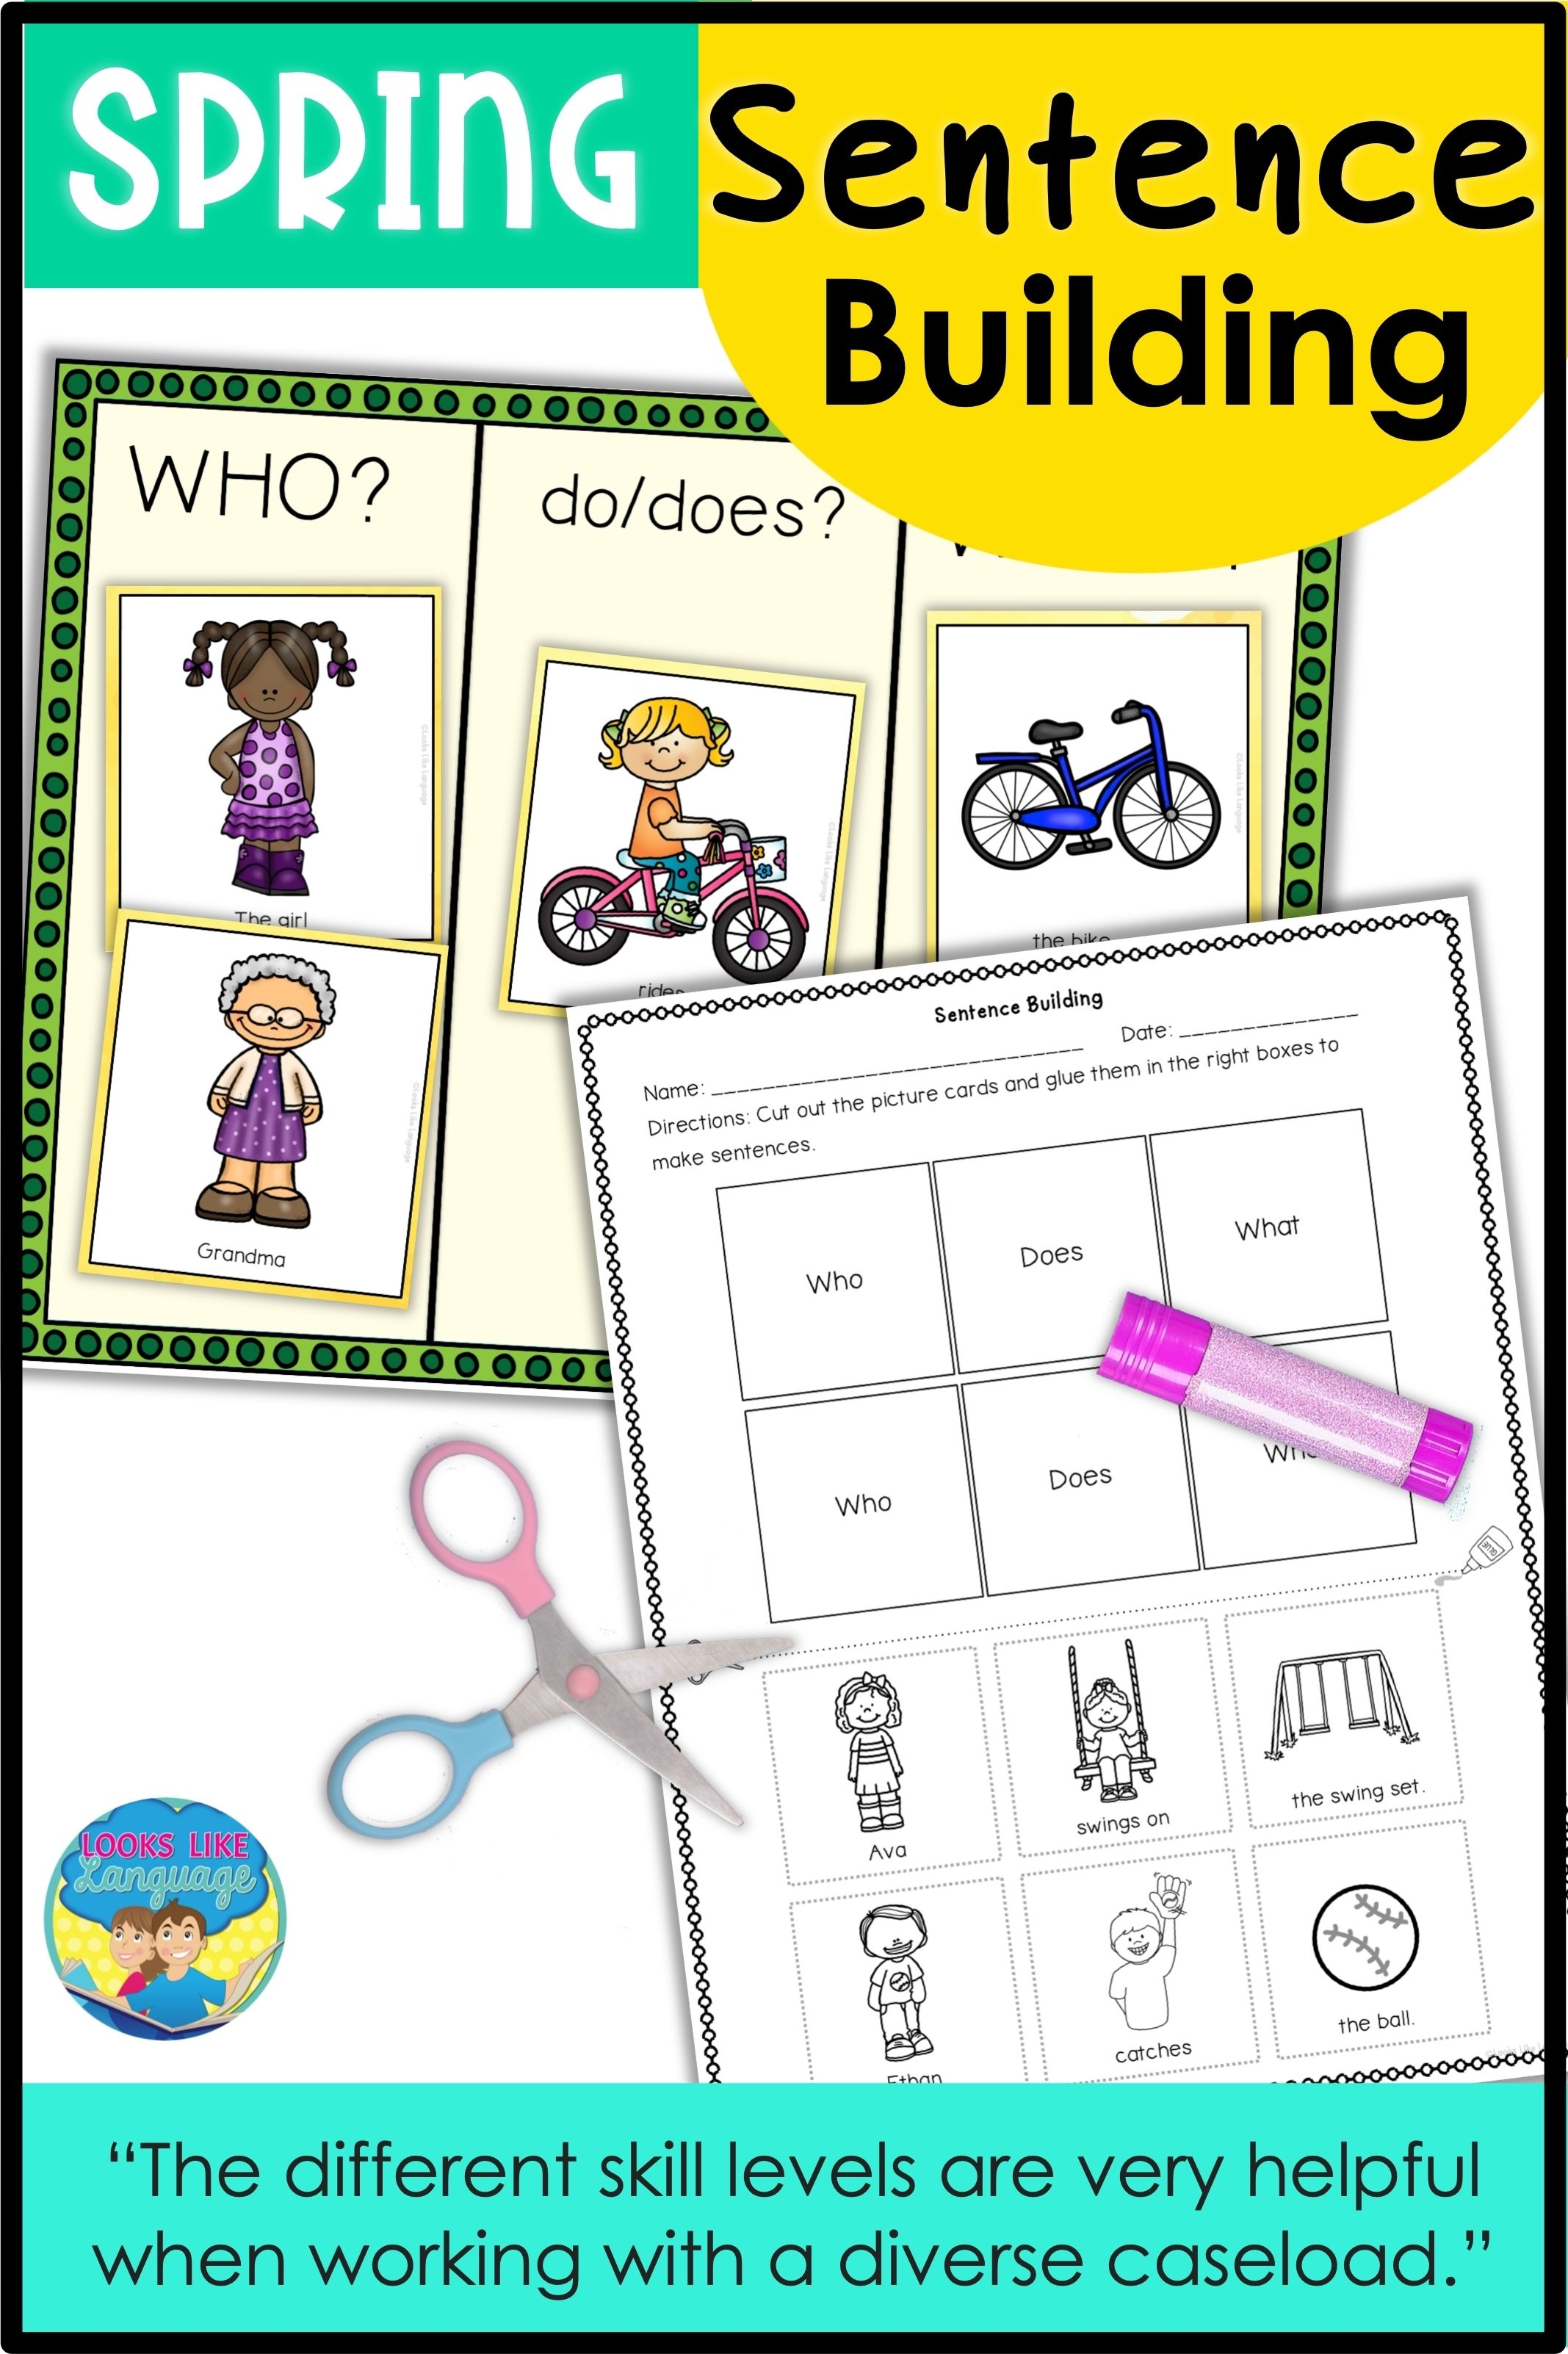 Use Pictures For Building Sentences To Build Better